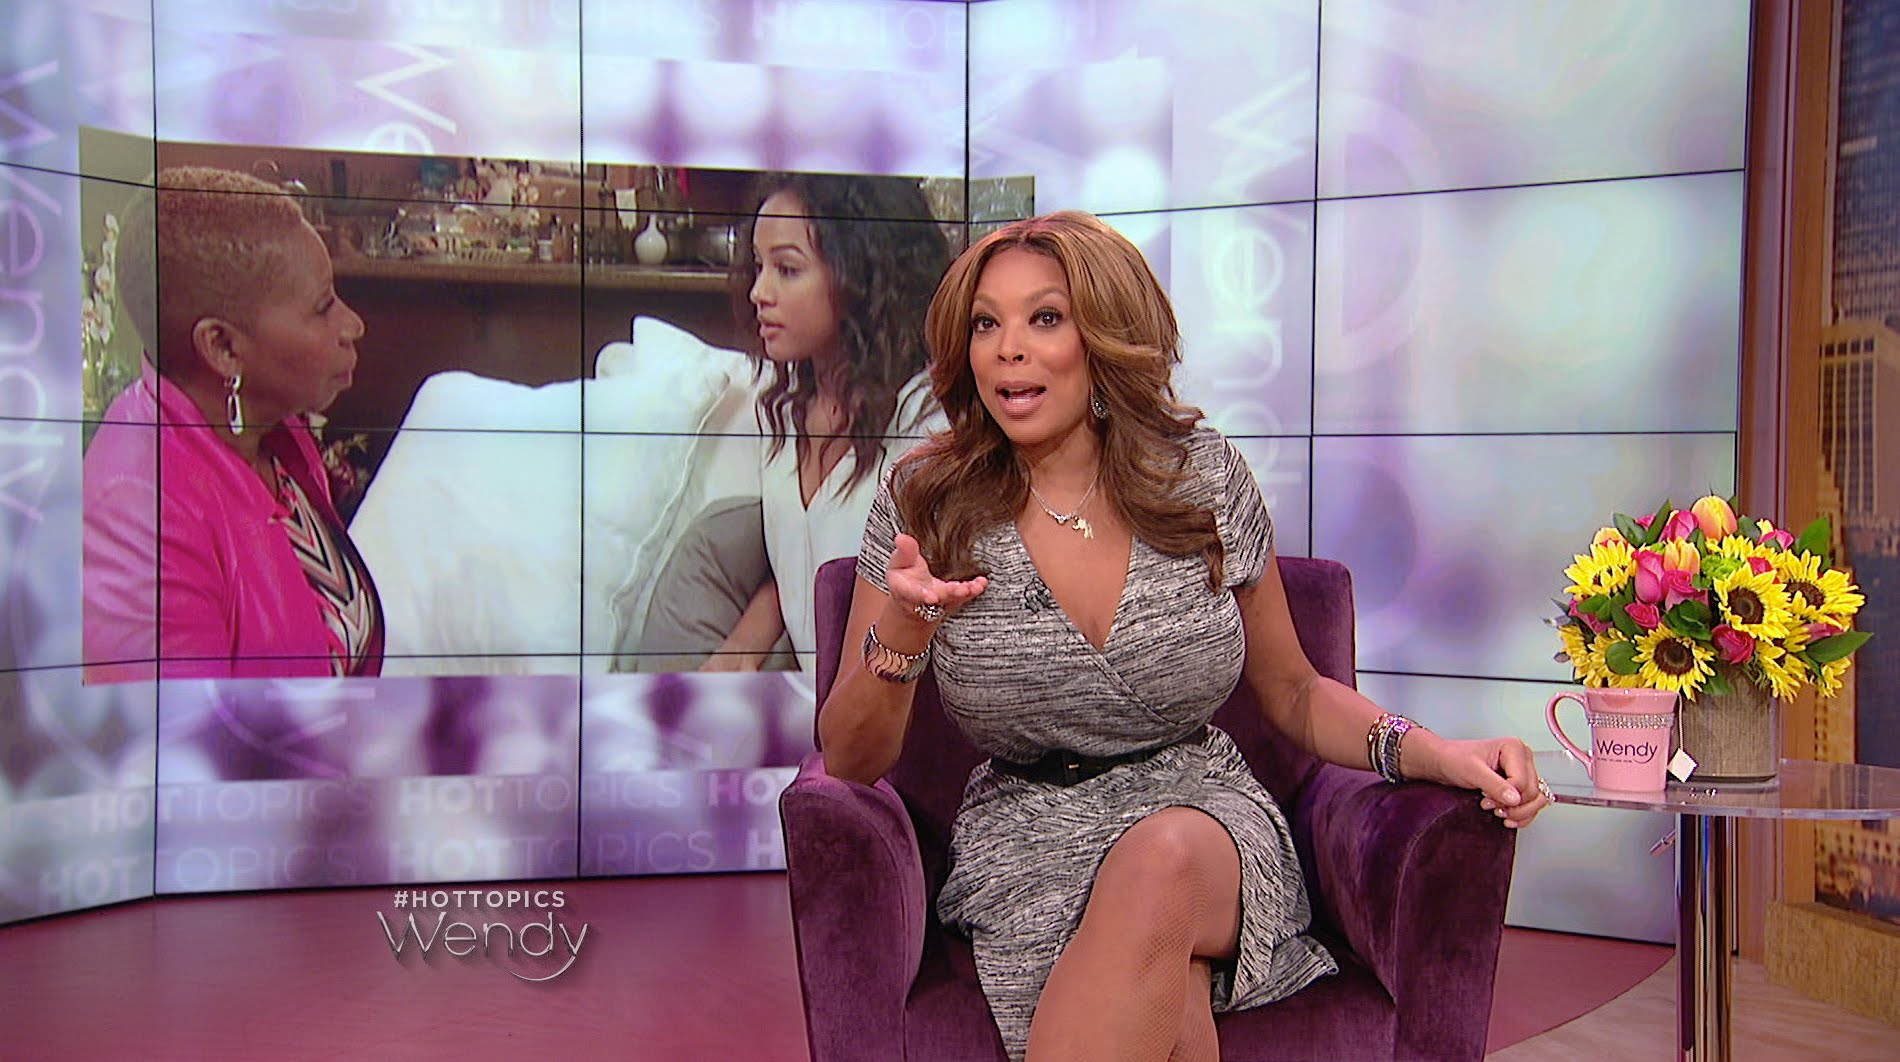 Wendy Williams Goes In on Oprah over Karrueche Tran